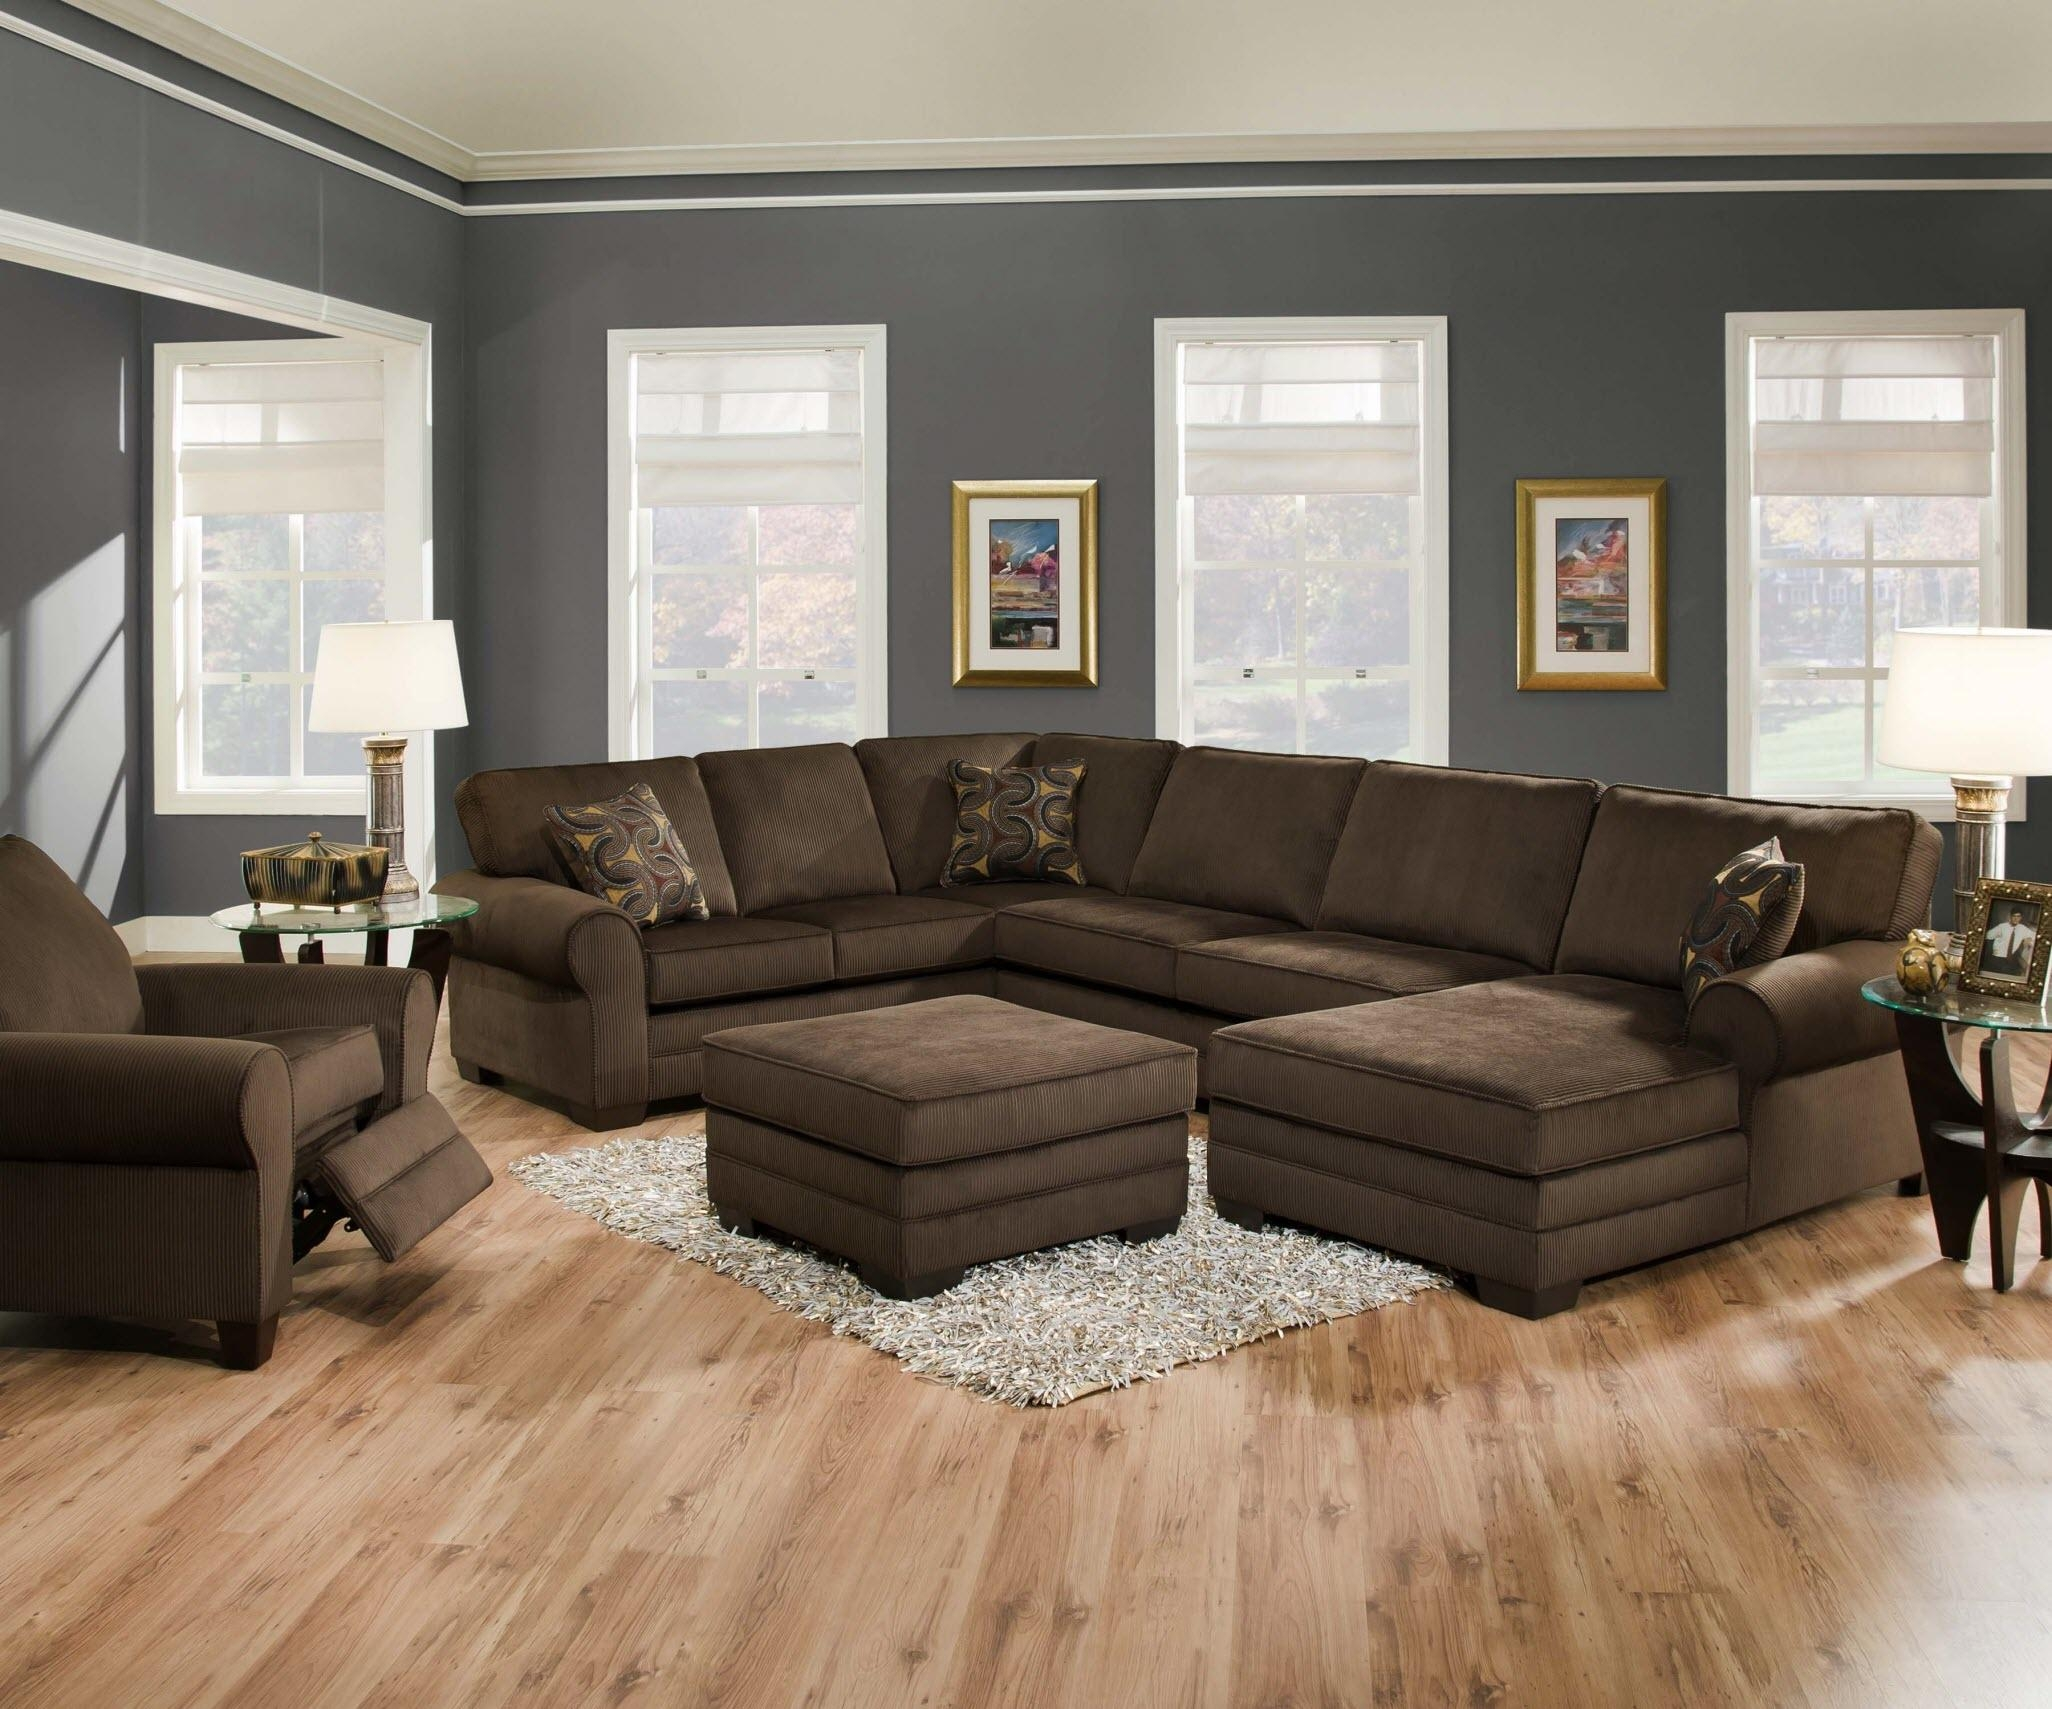 Designssimmons – Simmons Soho Espresso Sofa Loveseat Regarding Simmons Sectional Sofas (Image 1 of 20)